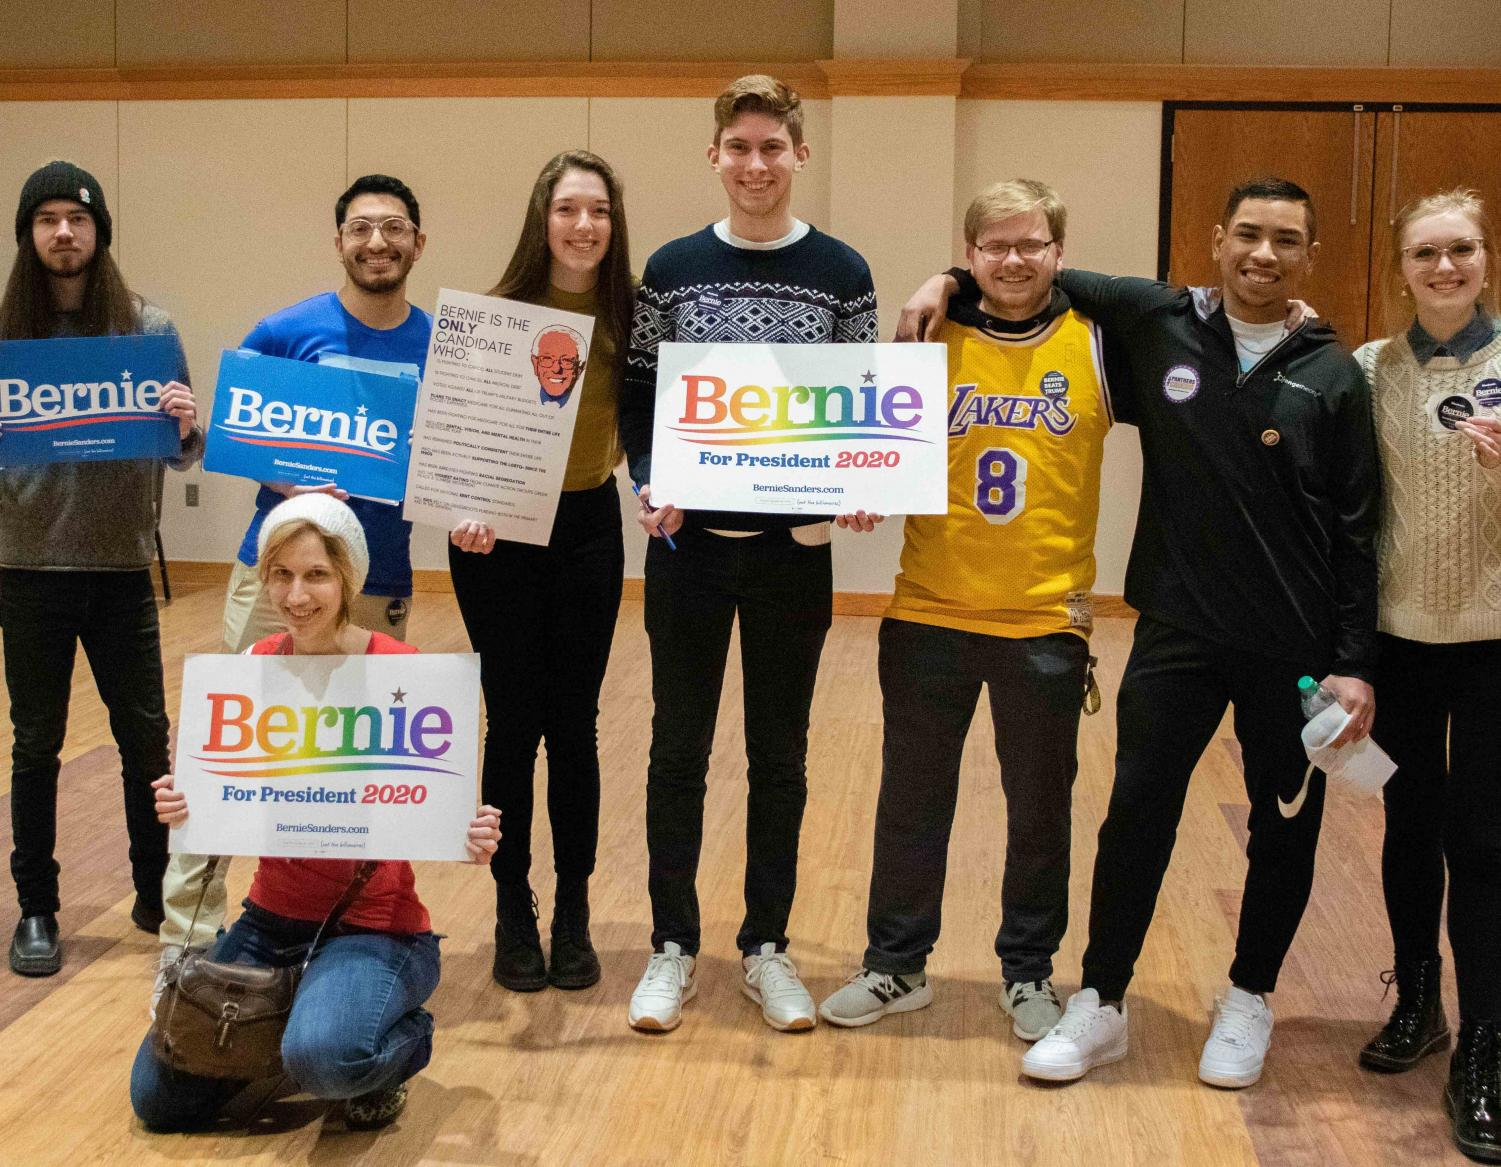 A group of Sanders supporters pose for a photo at Maucker Union's mock caucus on Monday, Jan. 27.